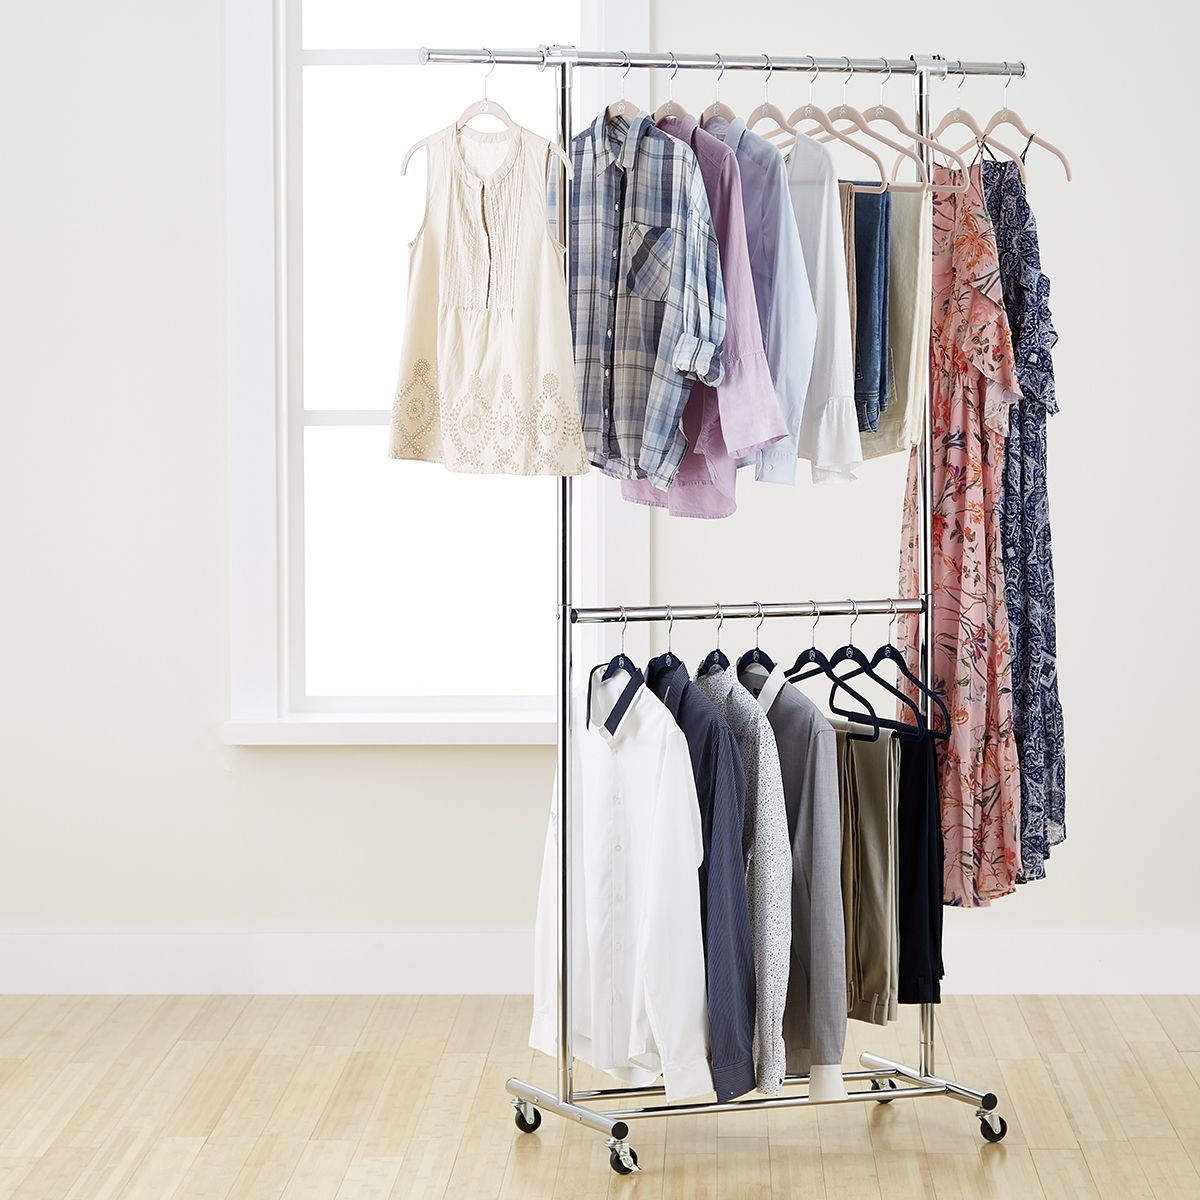 Made To Our Specifications Our Chrome Metal Double Hang Clothes Rack Creates Two Levels Of Short Hanging Cloth Clothing Rack Garment Racks Clothes Hanger Rack